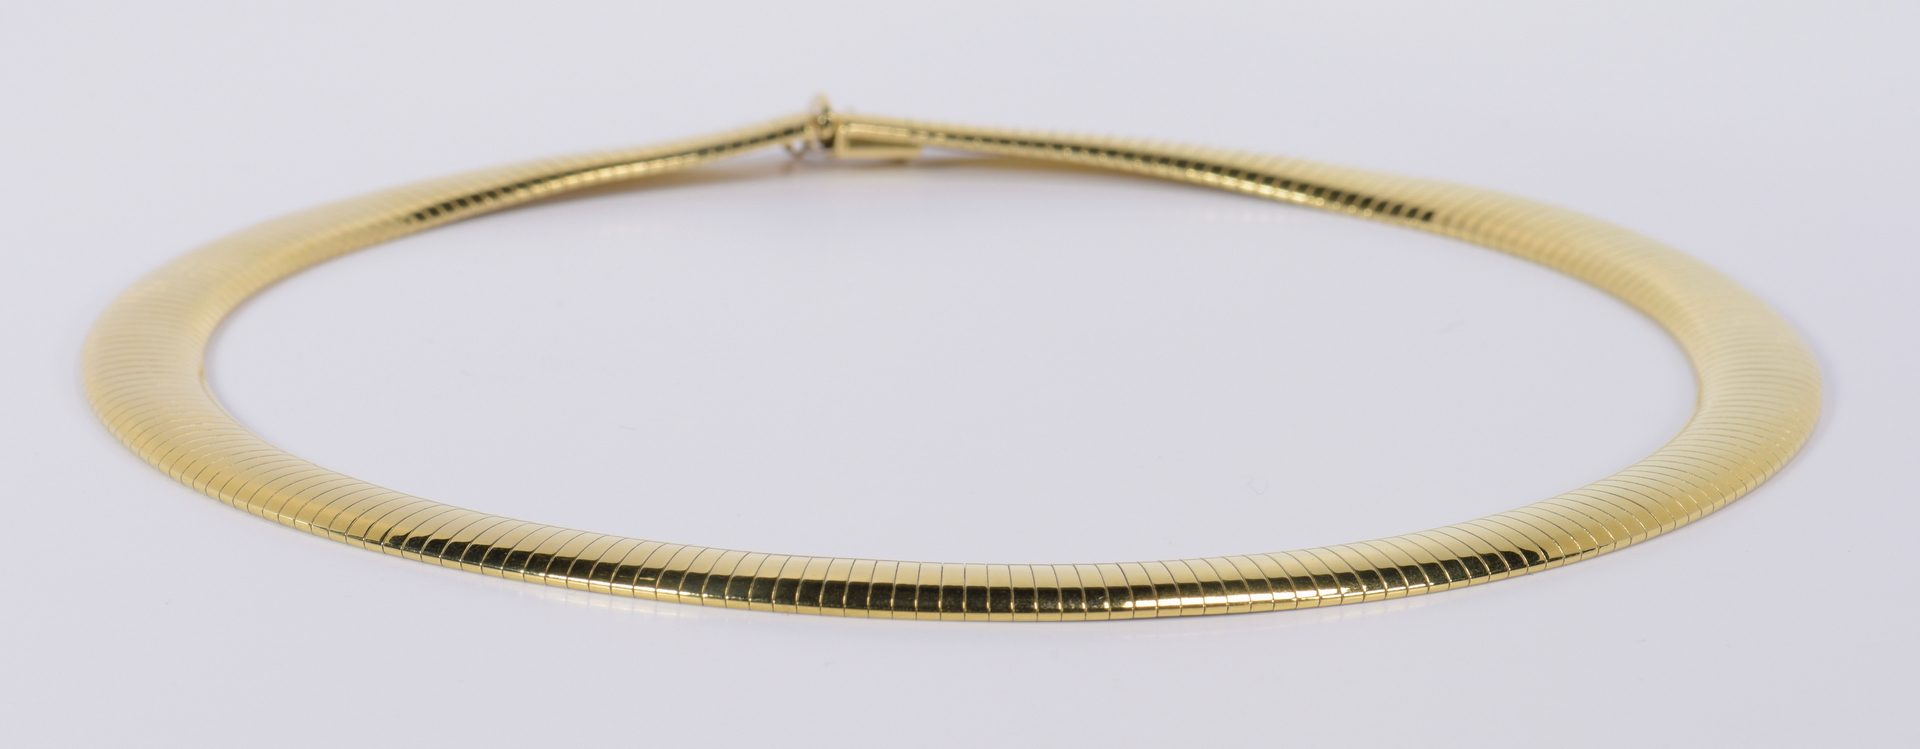 Lot 782: 14K Omega Collar Necklace, 45.8 grams